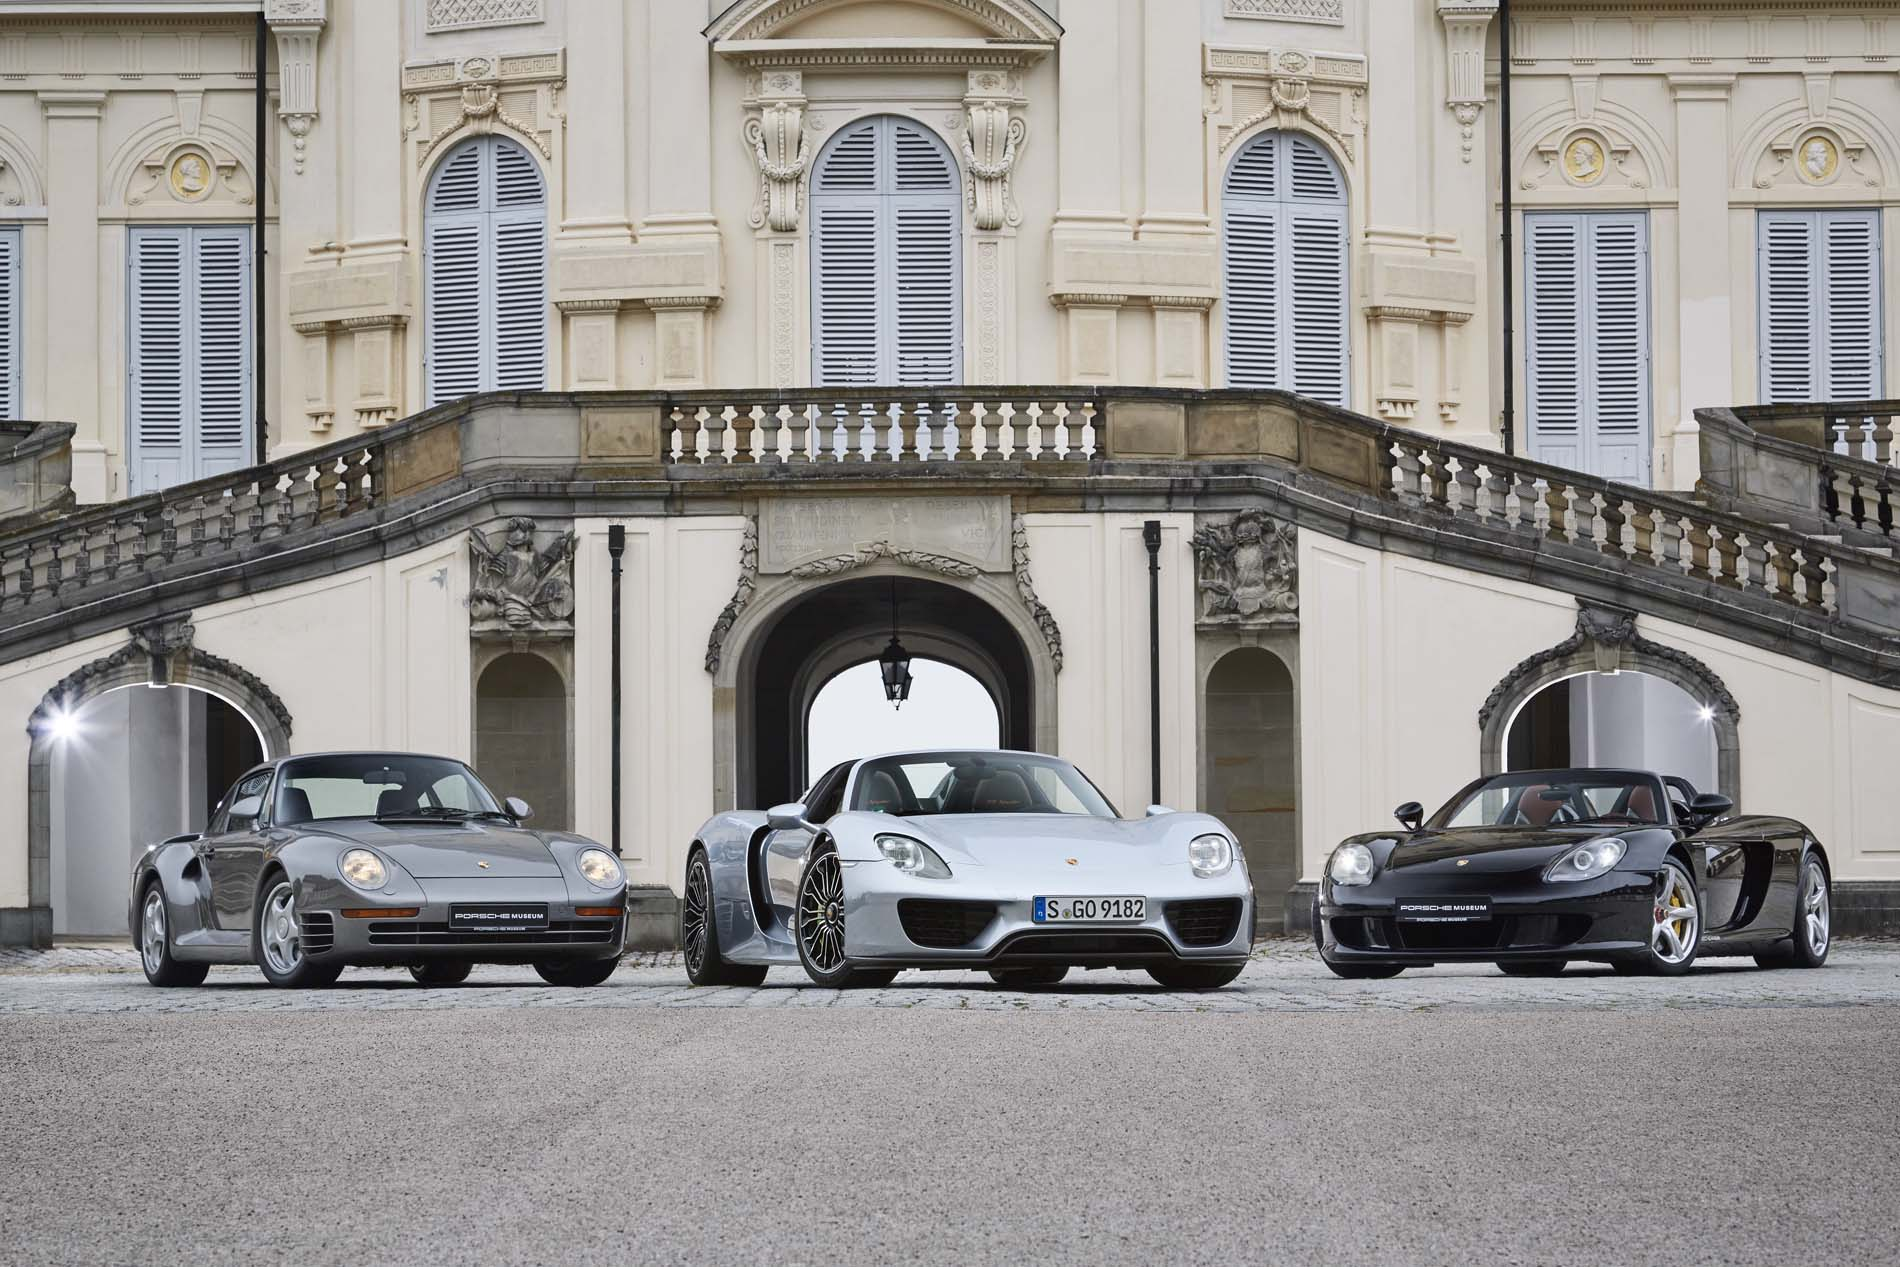 959, 918 Spyder, and Carrera GT